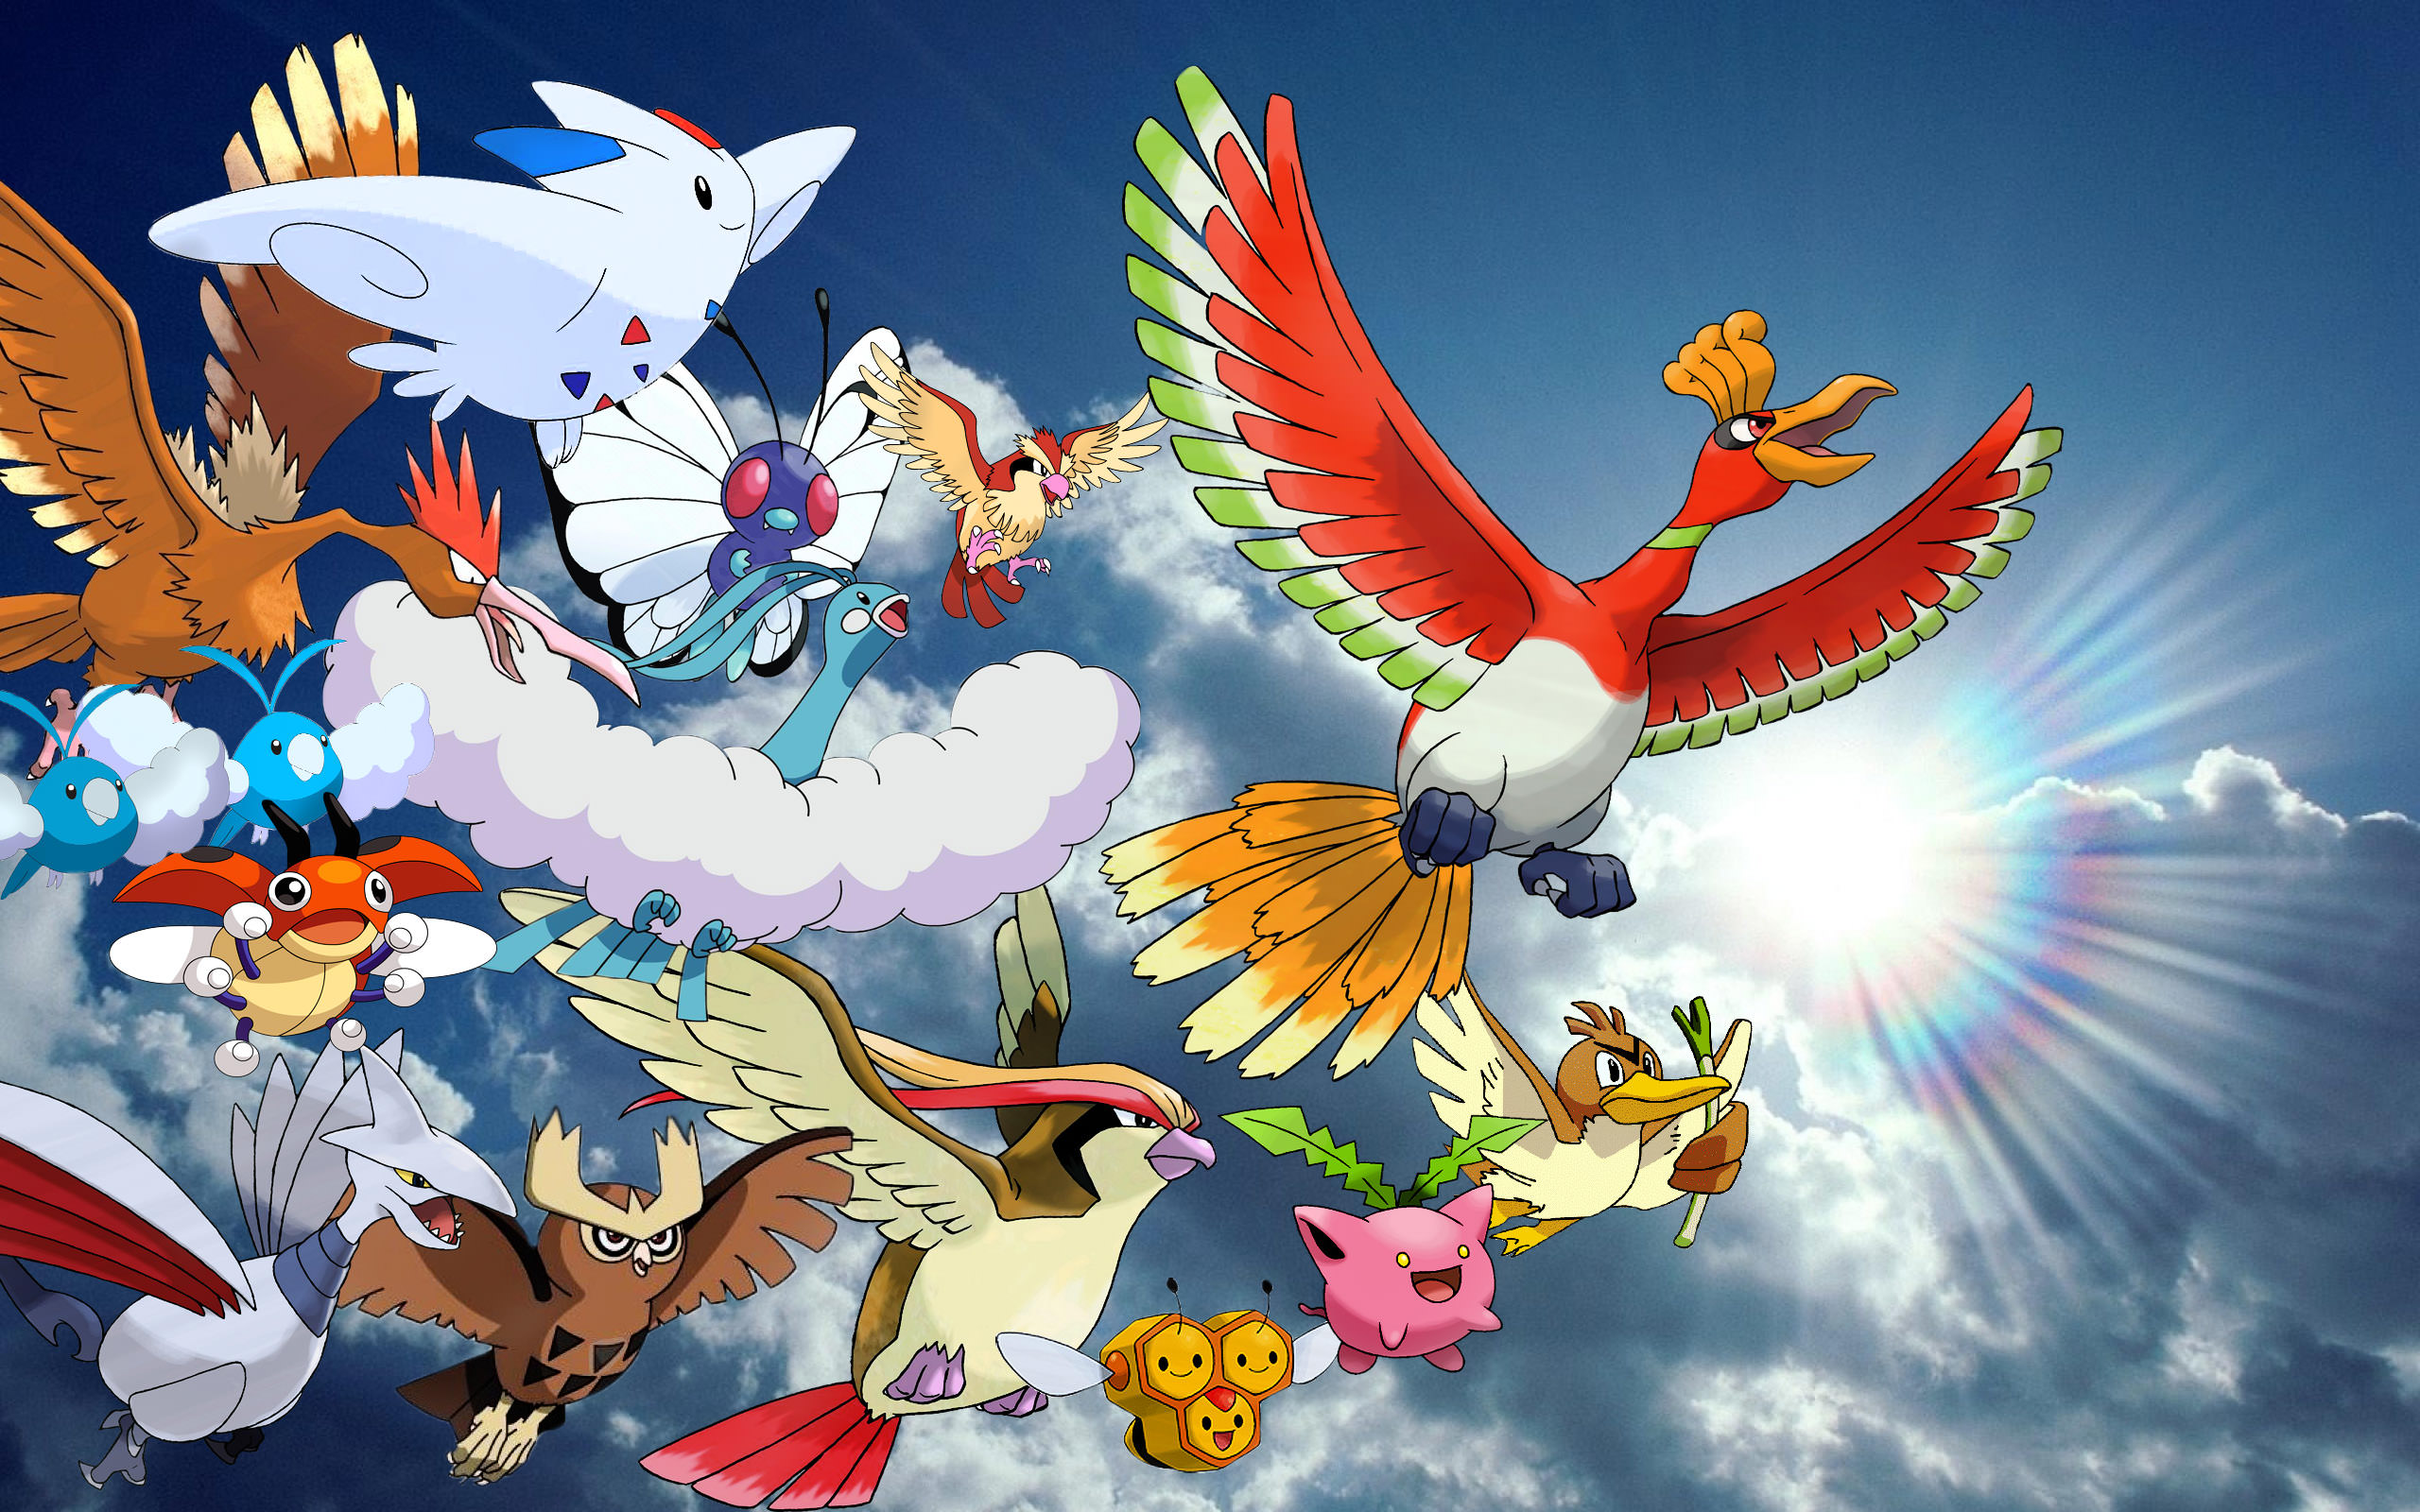 Retro Anime Girl Wallpaper 35 Crazy Pokemon Backgrounds Wallpapers Images